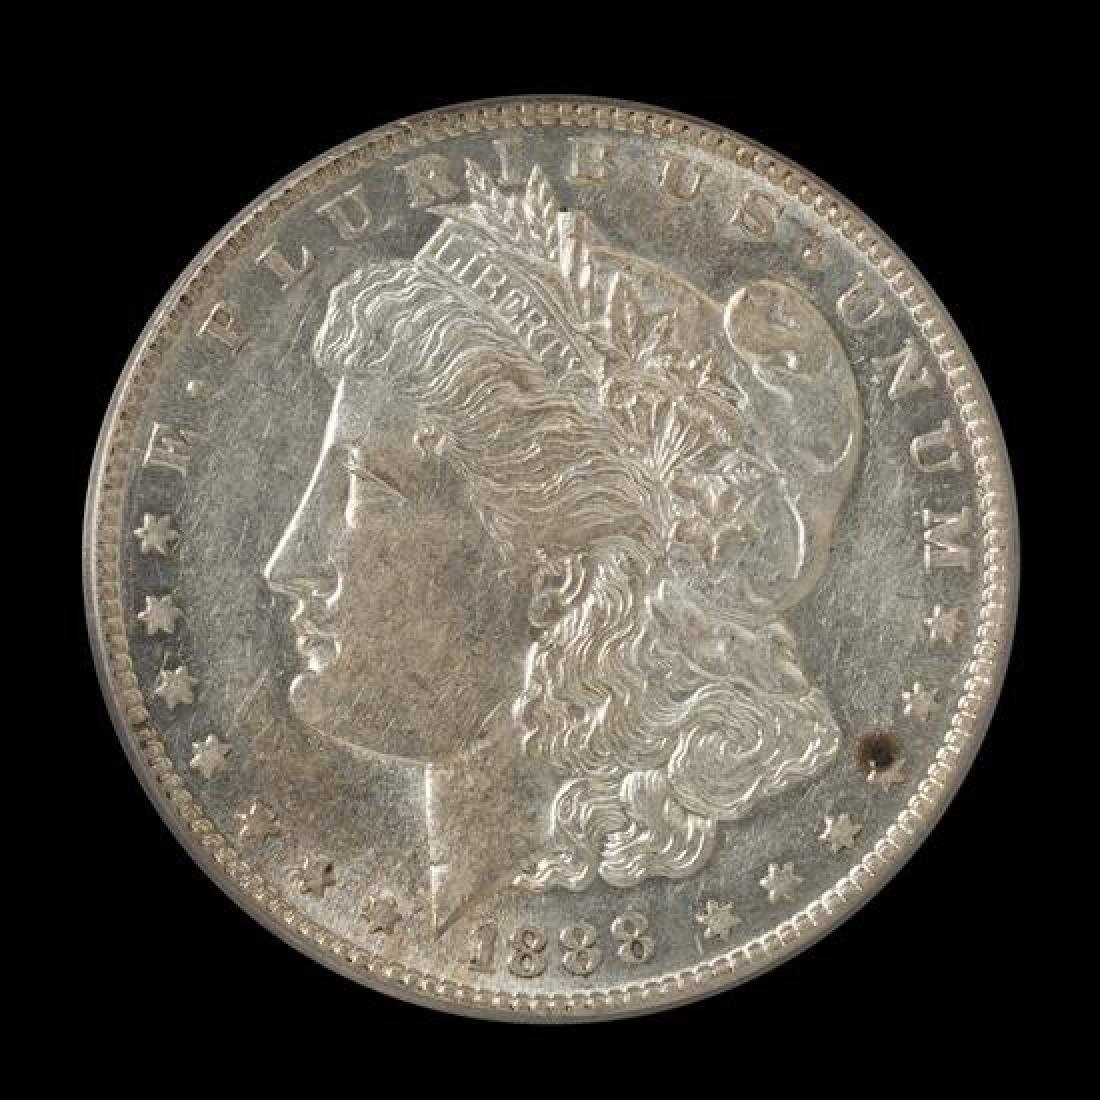 A United States 1888-S Morgan Silver Dollar Coin